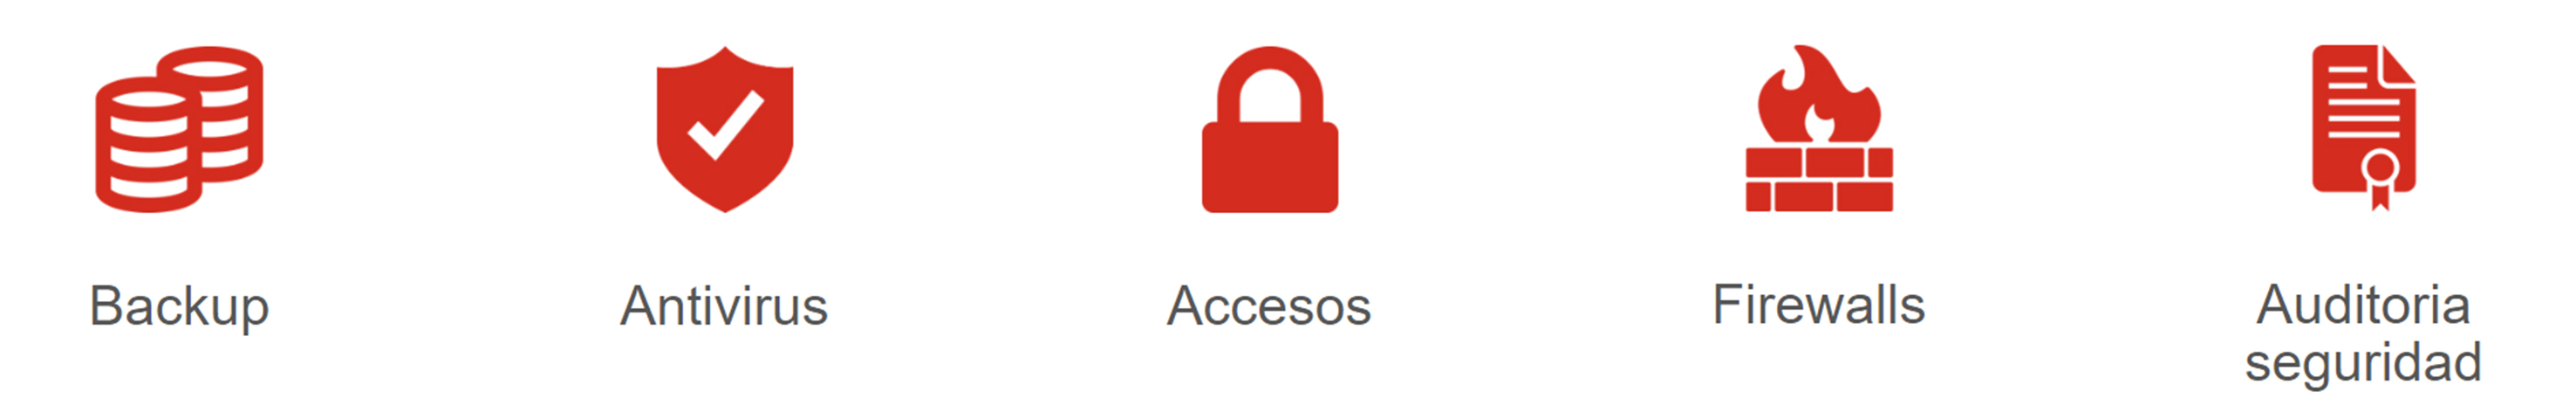 Backup antivitus accesos firewalls auditoria